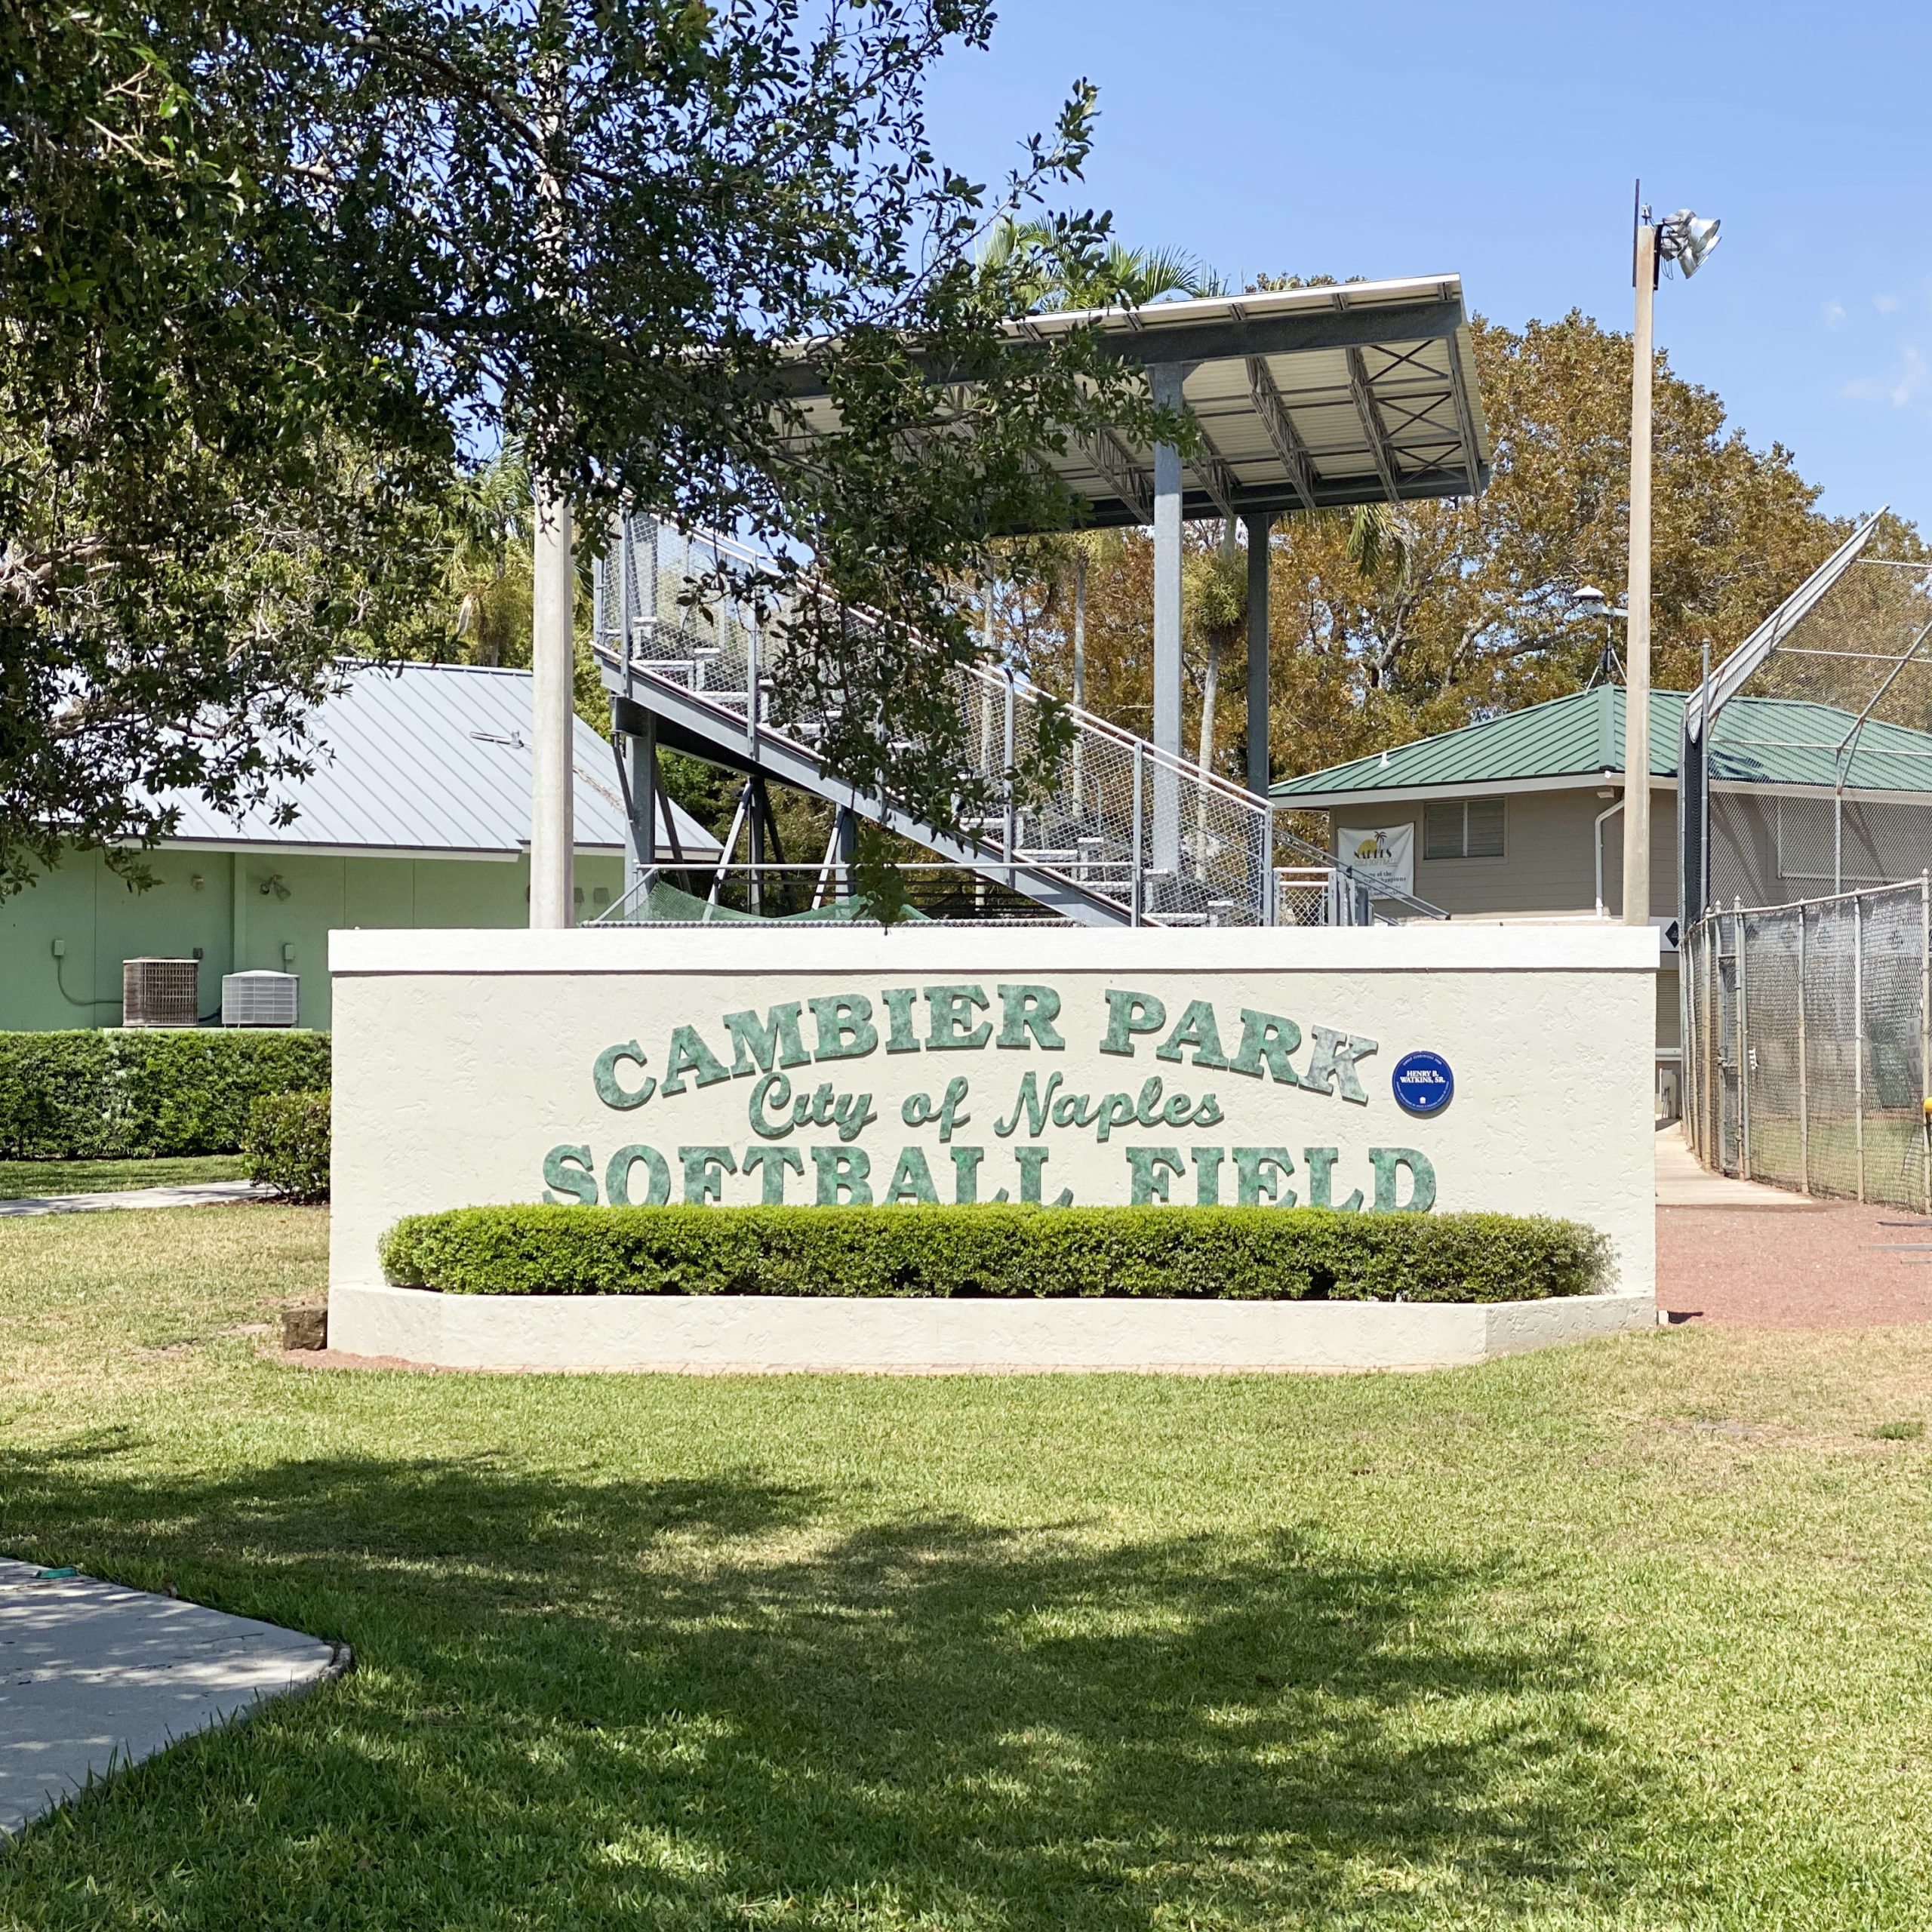 Cambier Park Softball Field